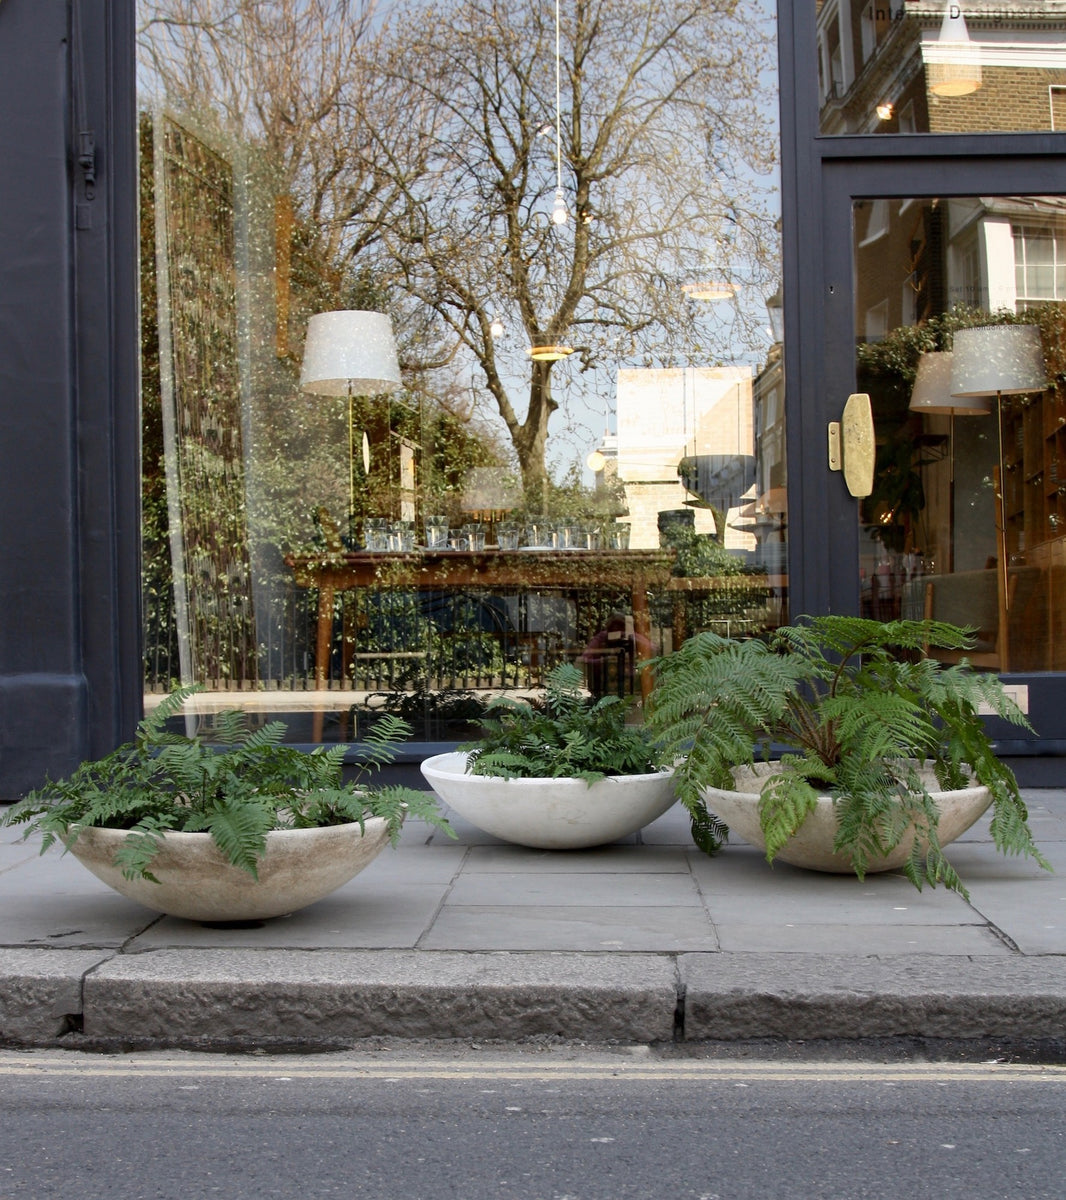 Trio of Modernist Planters Willy Guhl - Image 1